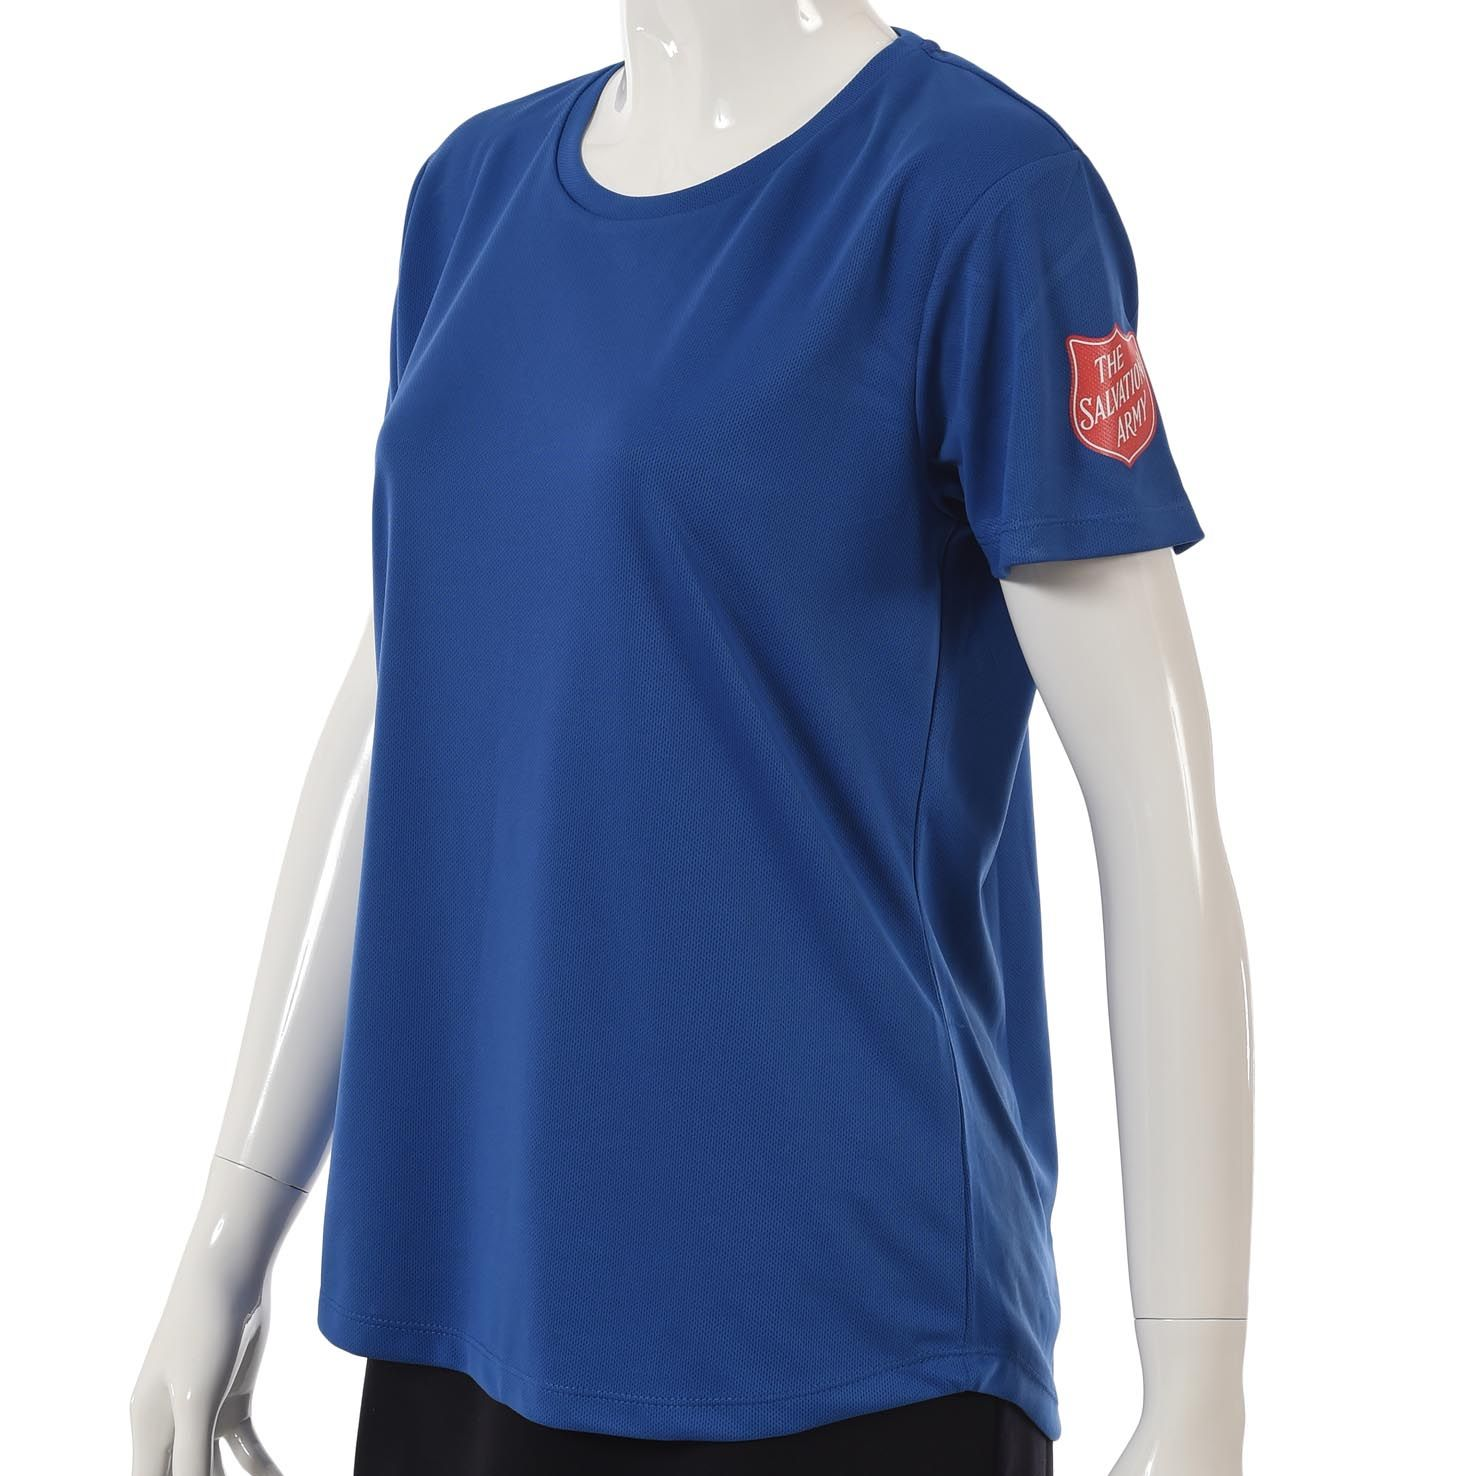 Ladies Coolfit T-Shirt in Royal Blue with Red Shield